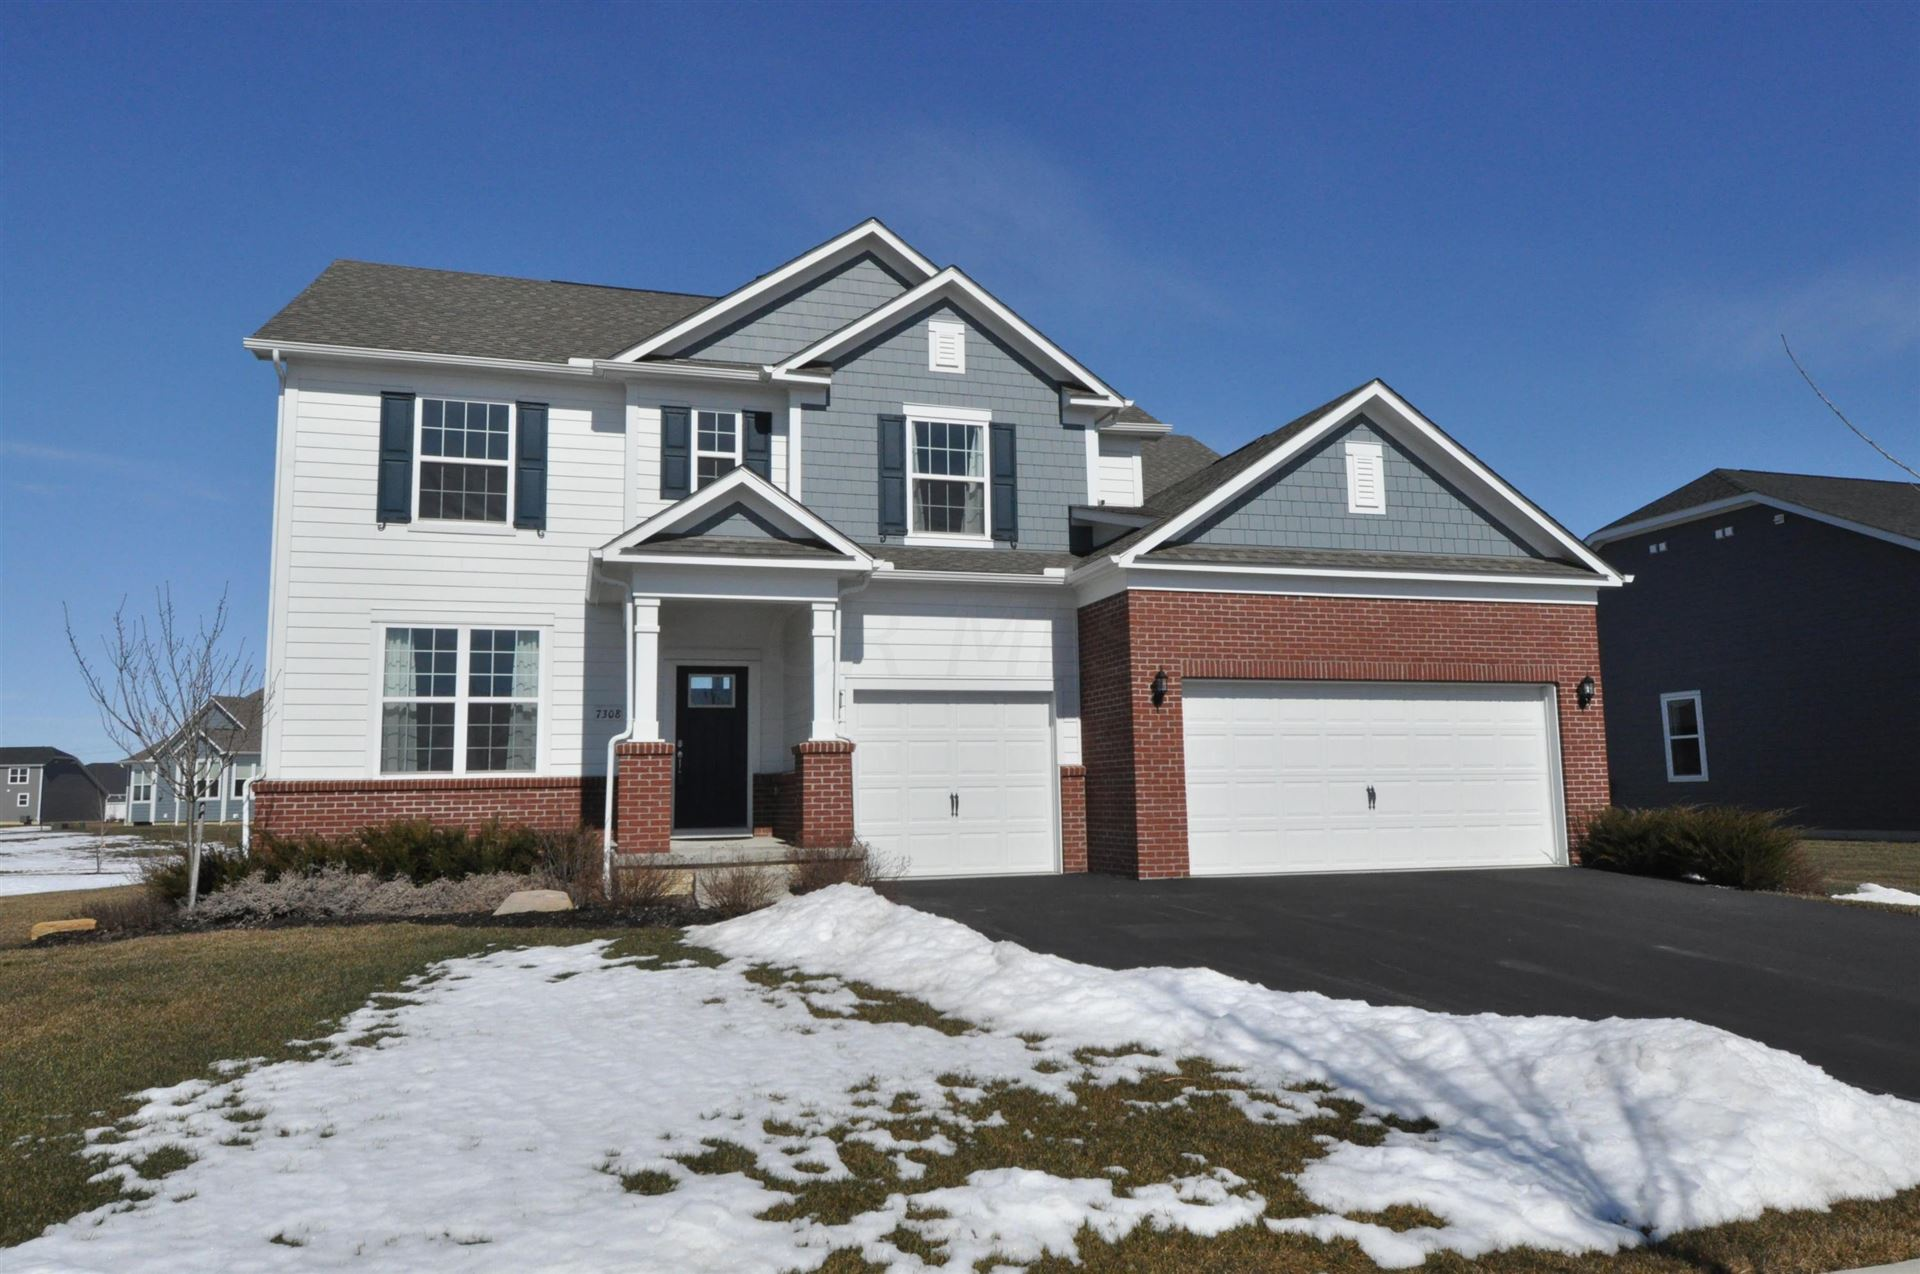 Photo of 7308 White Cap Drive, Powell, OH 43065 (MLS # 221005987)